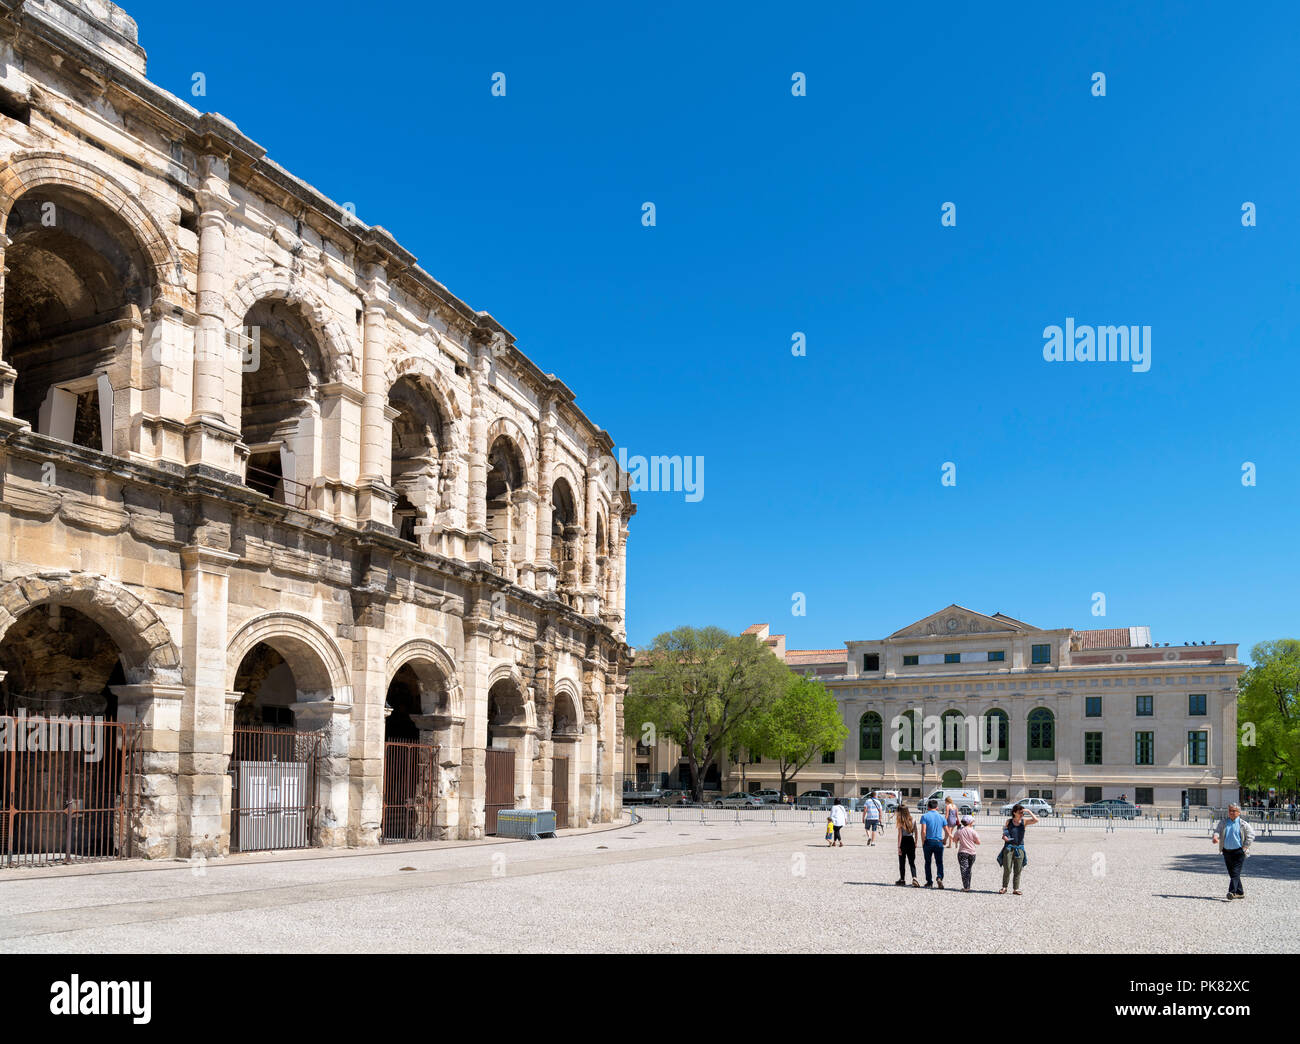 Les Arenes, the 1st century Roman amphitheatre, looking towards the Palais de Justice, Nimes, Languedoc, France - Stock Image